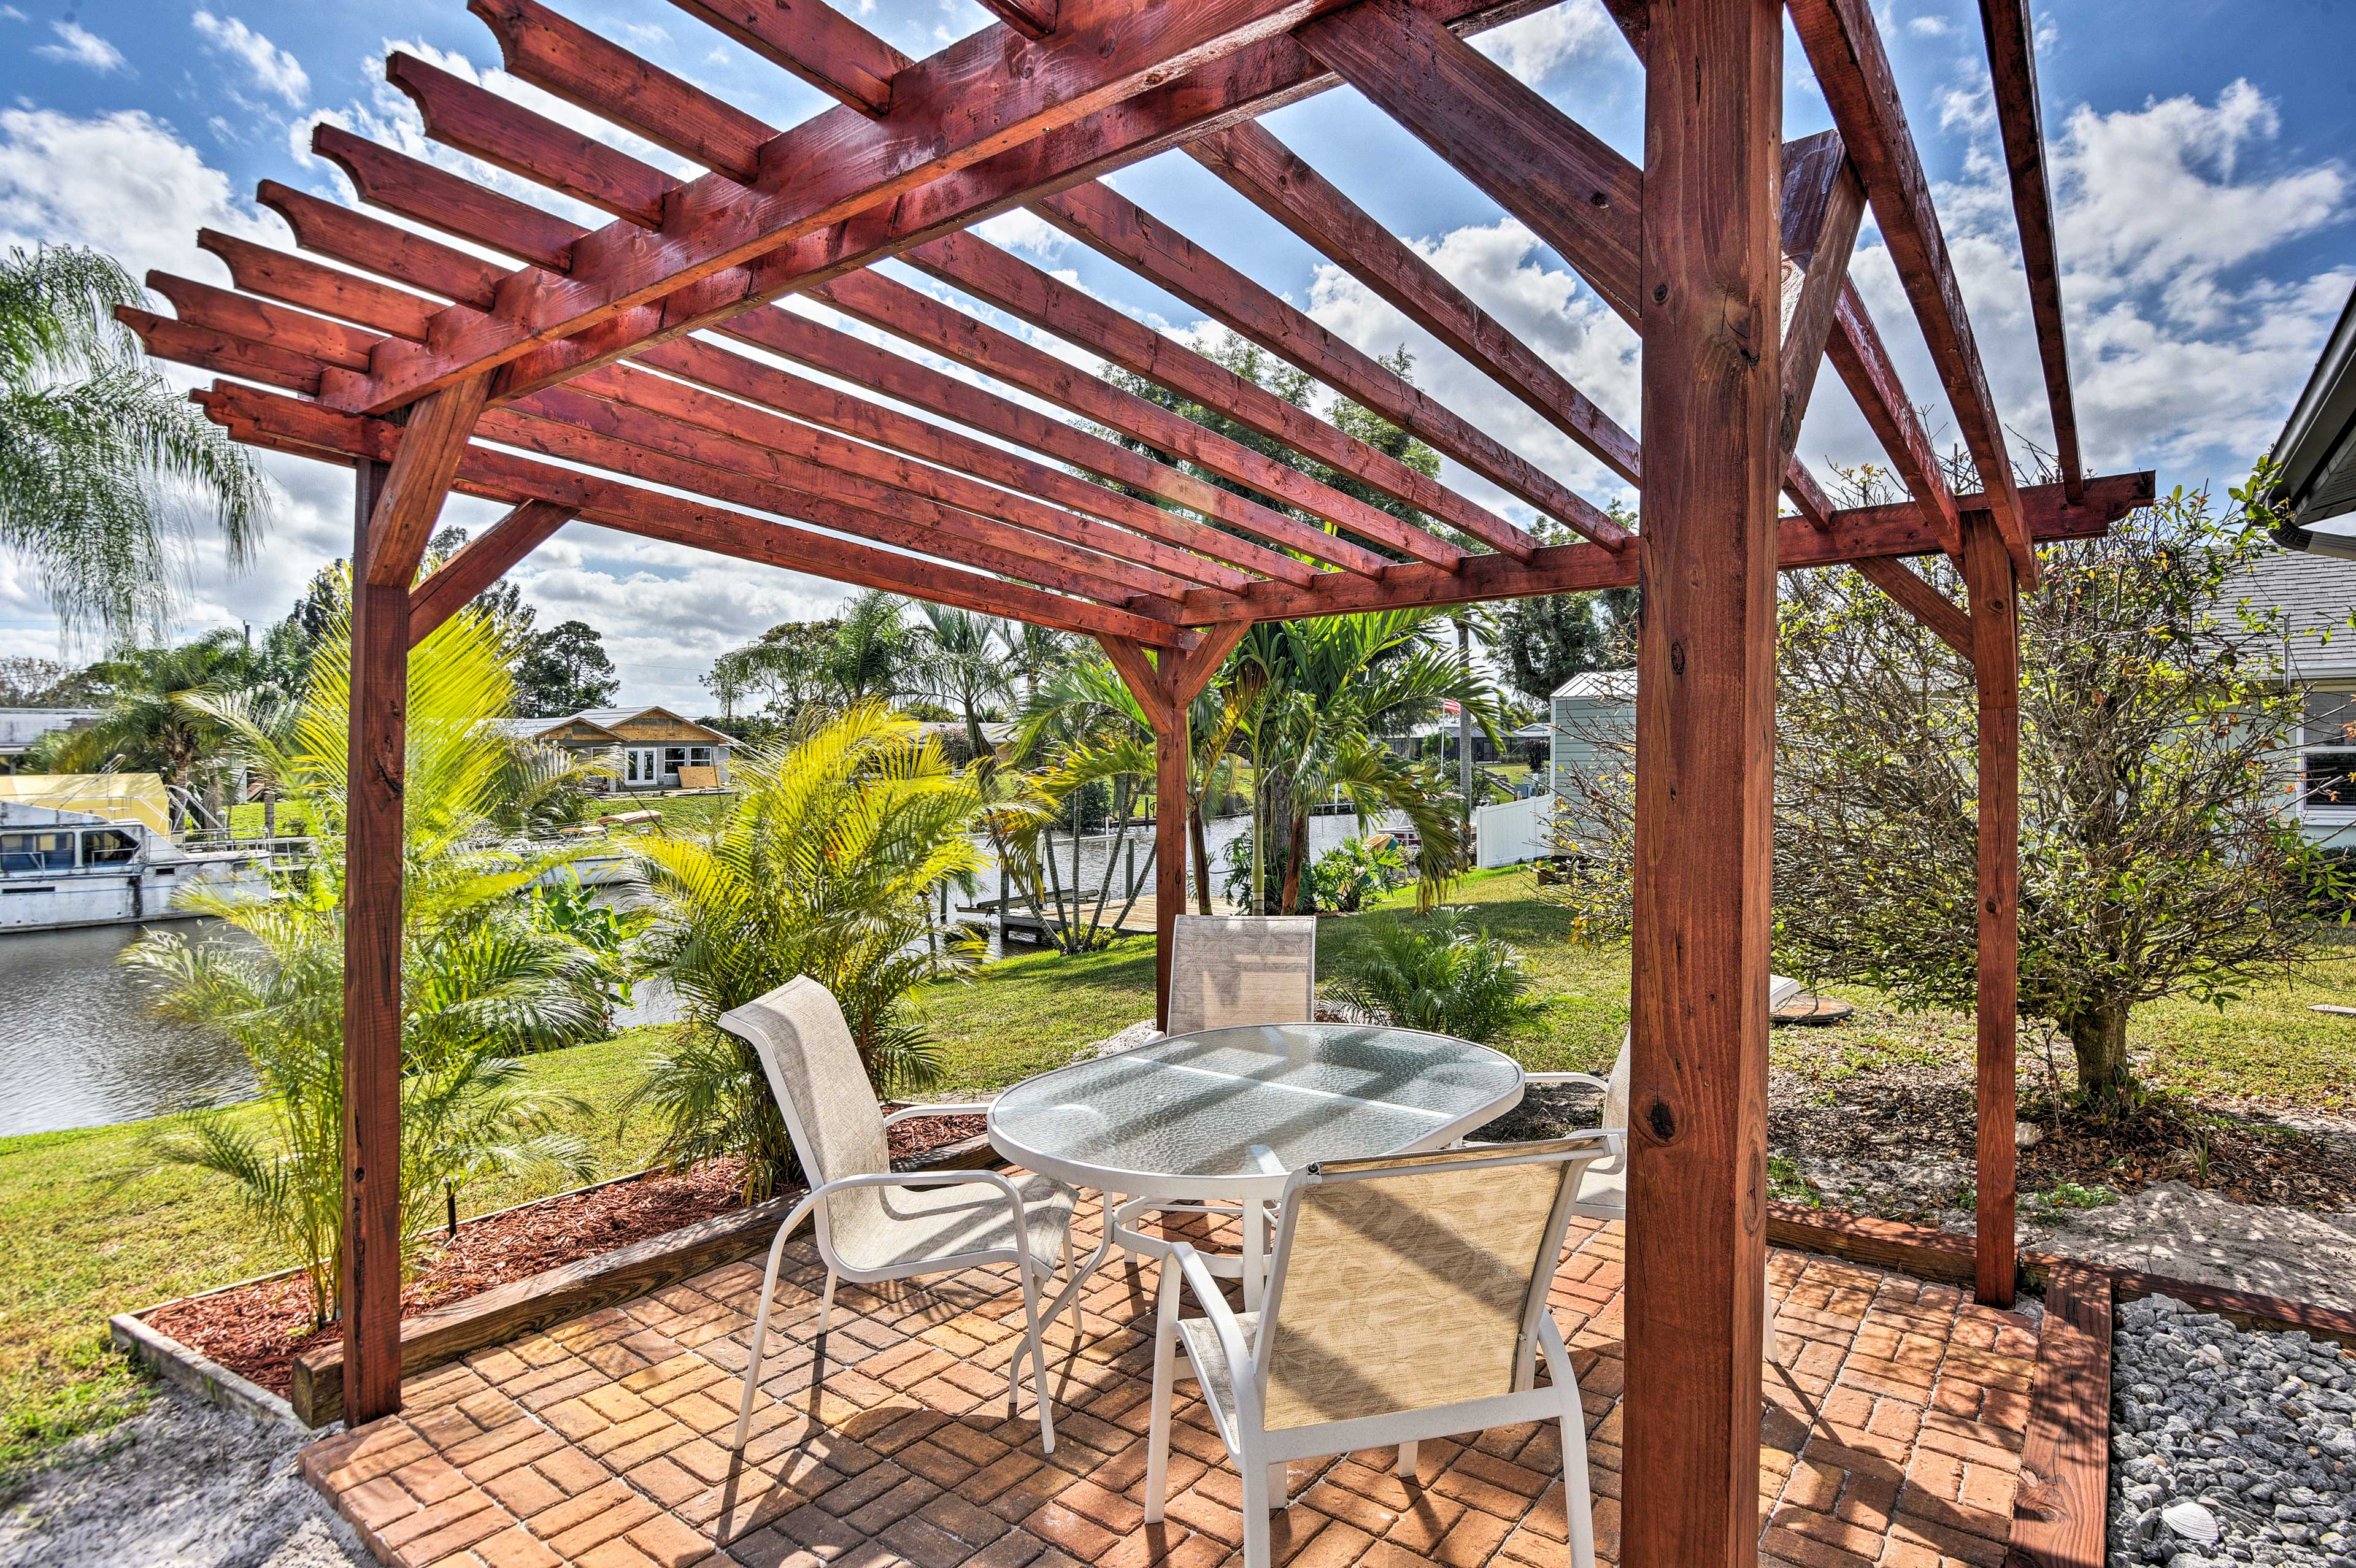 Enjoy a cocktail beneath the pergola while watching the sunset.